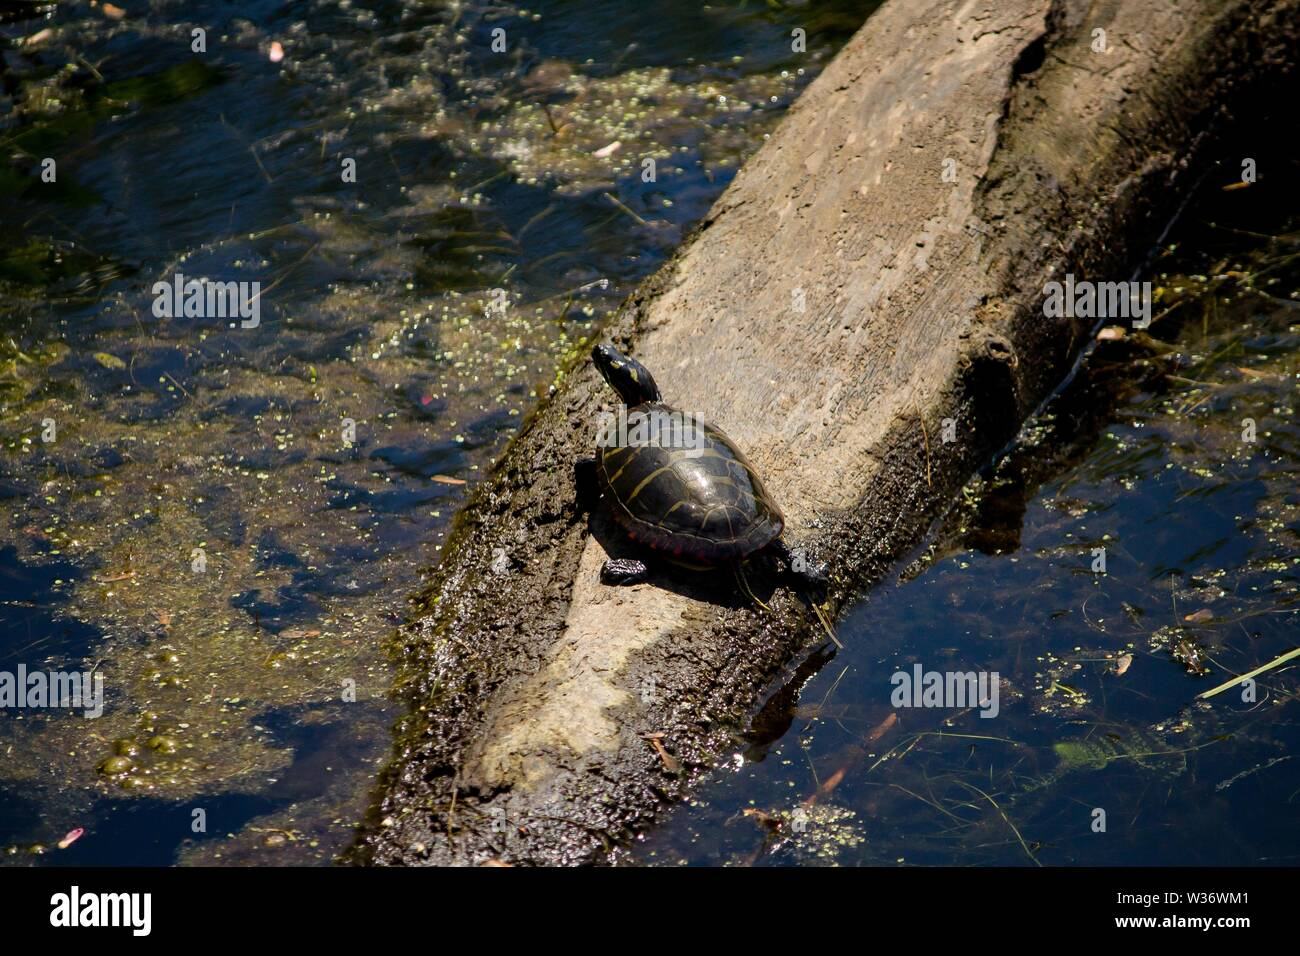 a closeup shot from a painted turtle resting on a branch in water - Stock Image